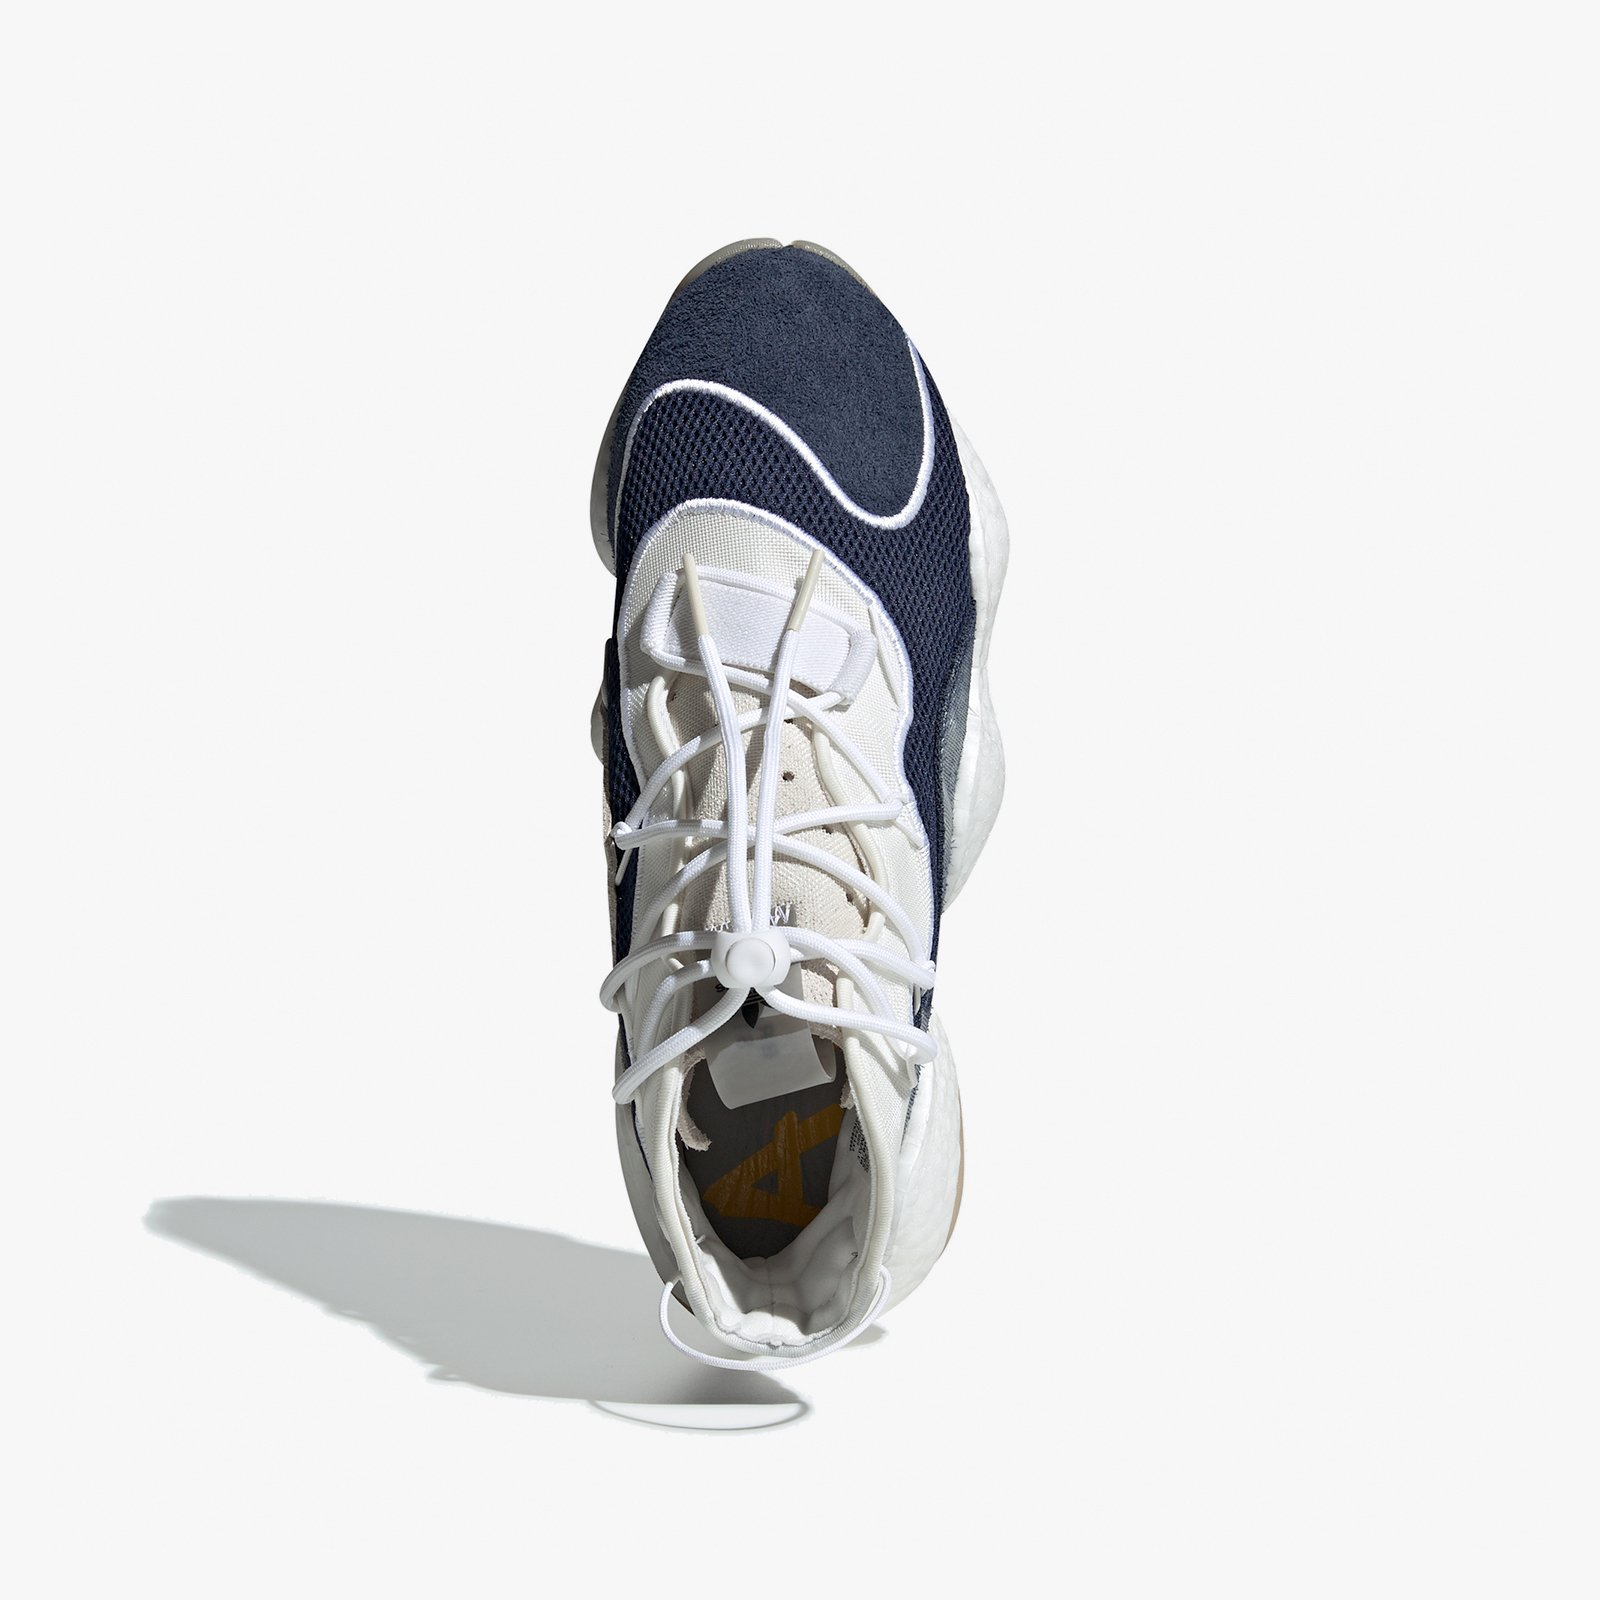 sneakers for cheap c5a07 8c0f6 adidas Crazy BYW LVL I x Bristol - Bb7669 - Sneakersnstuff   sneakers    streetwear online since 1999